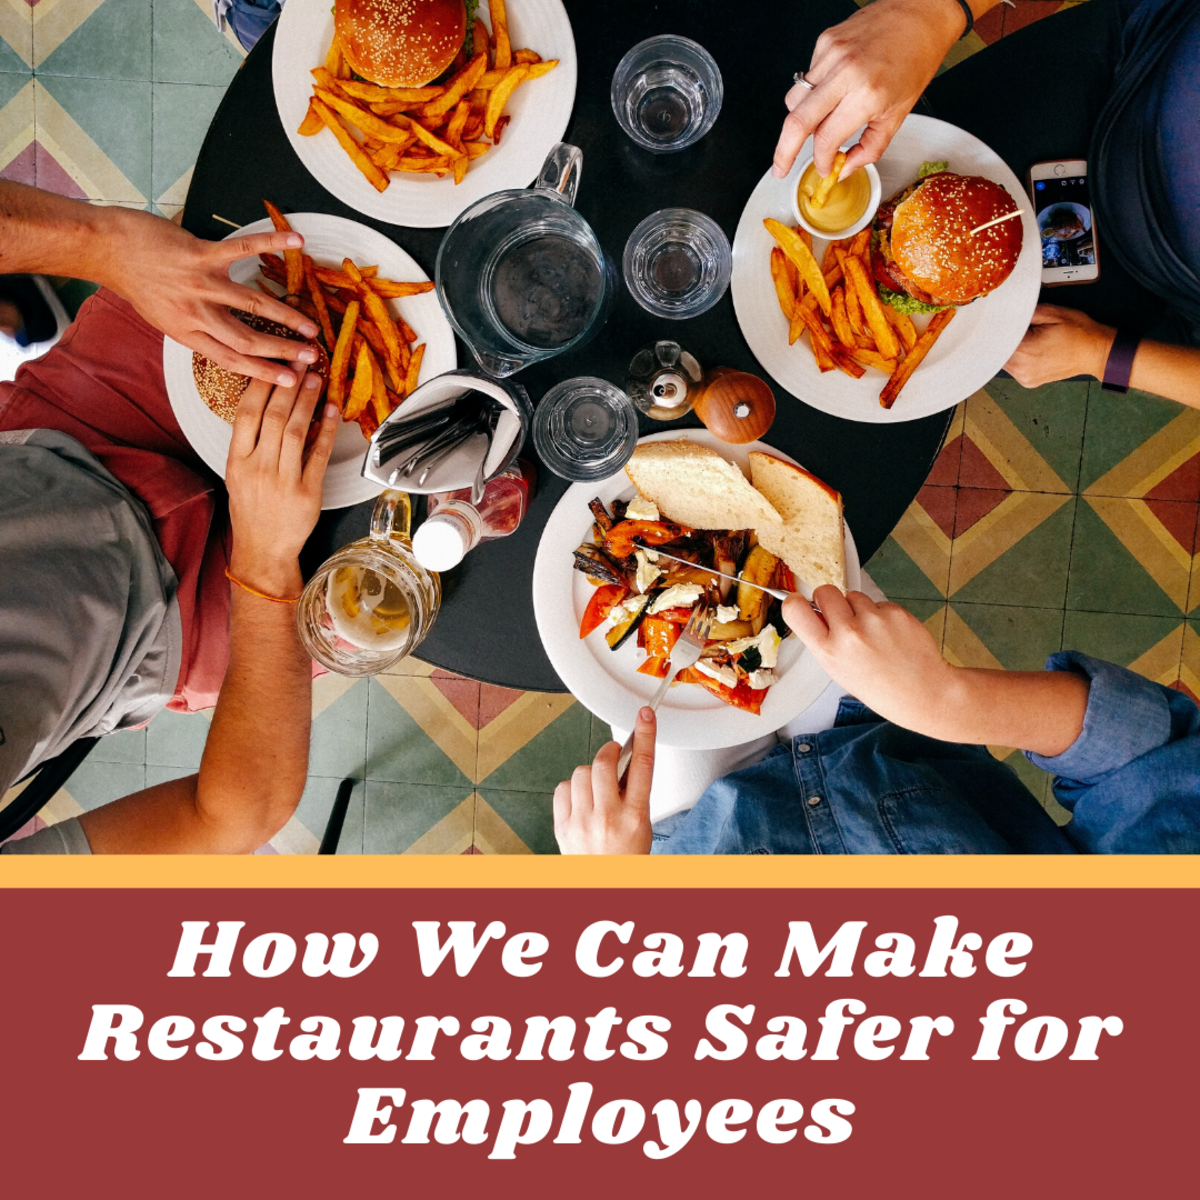 These tips can help make restaurants safer and, in the end, more efficient.